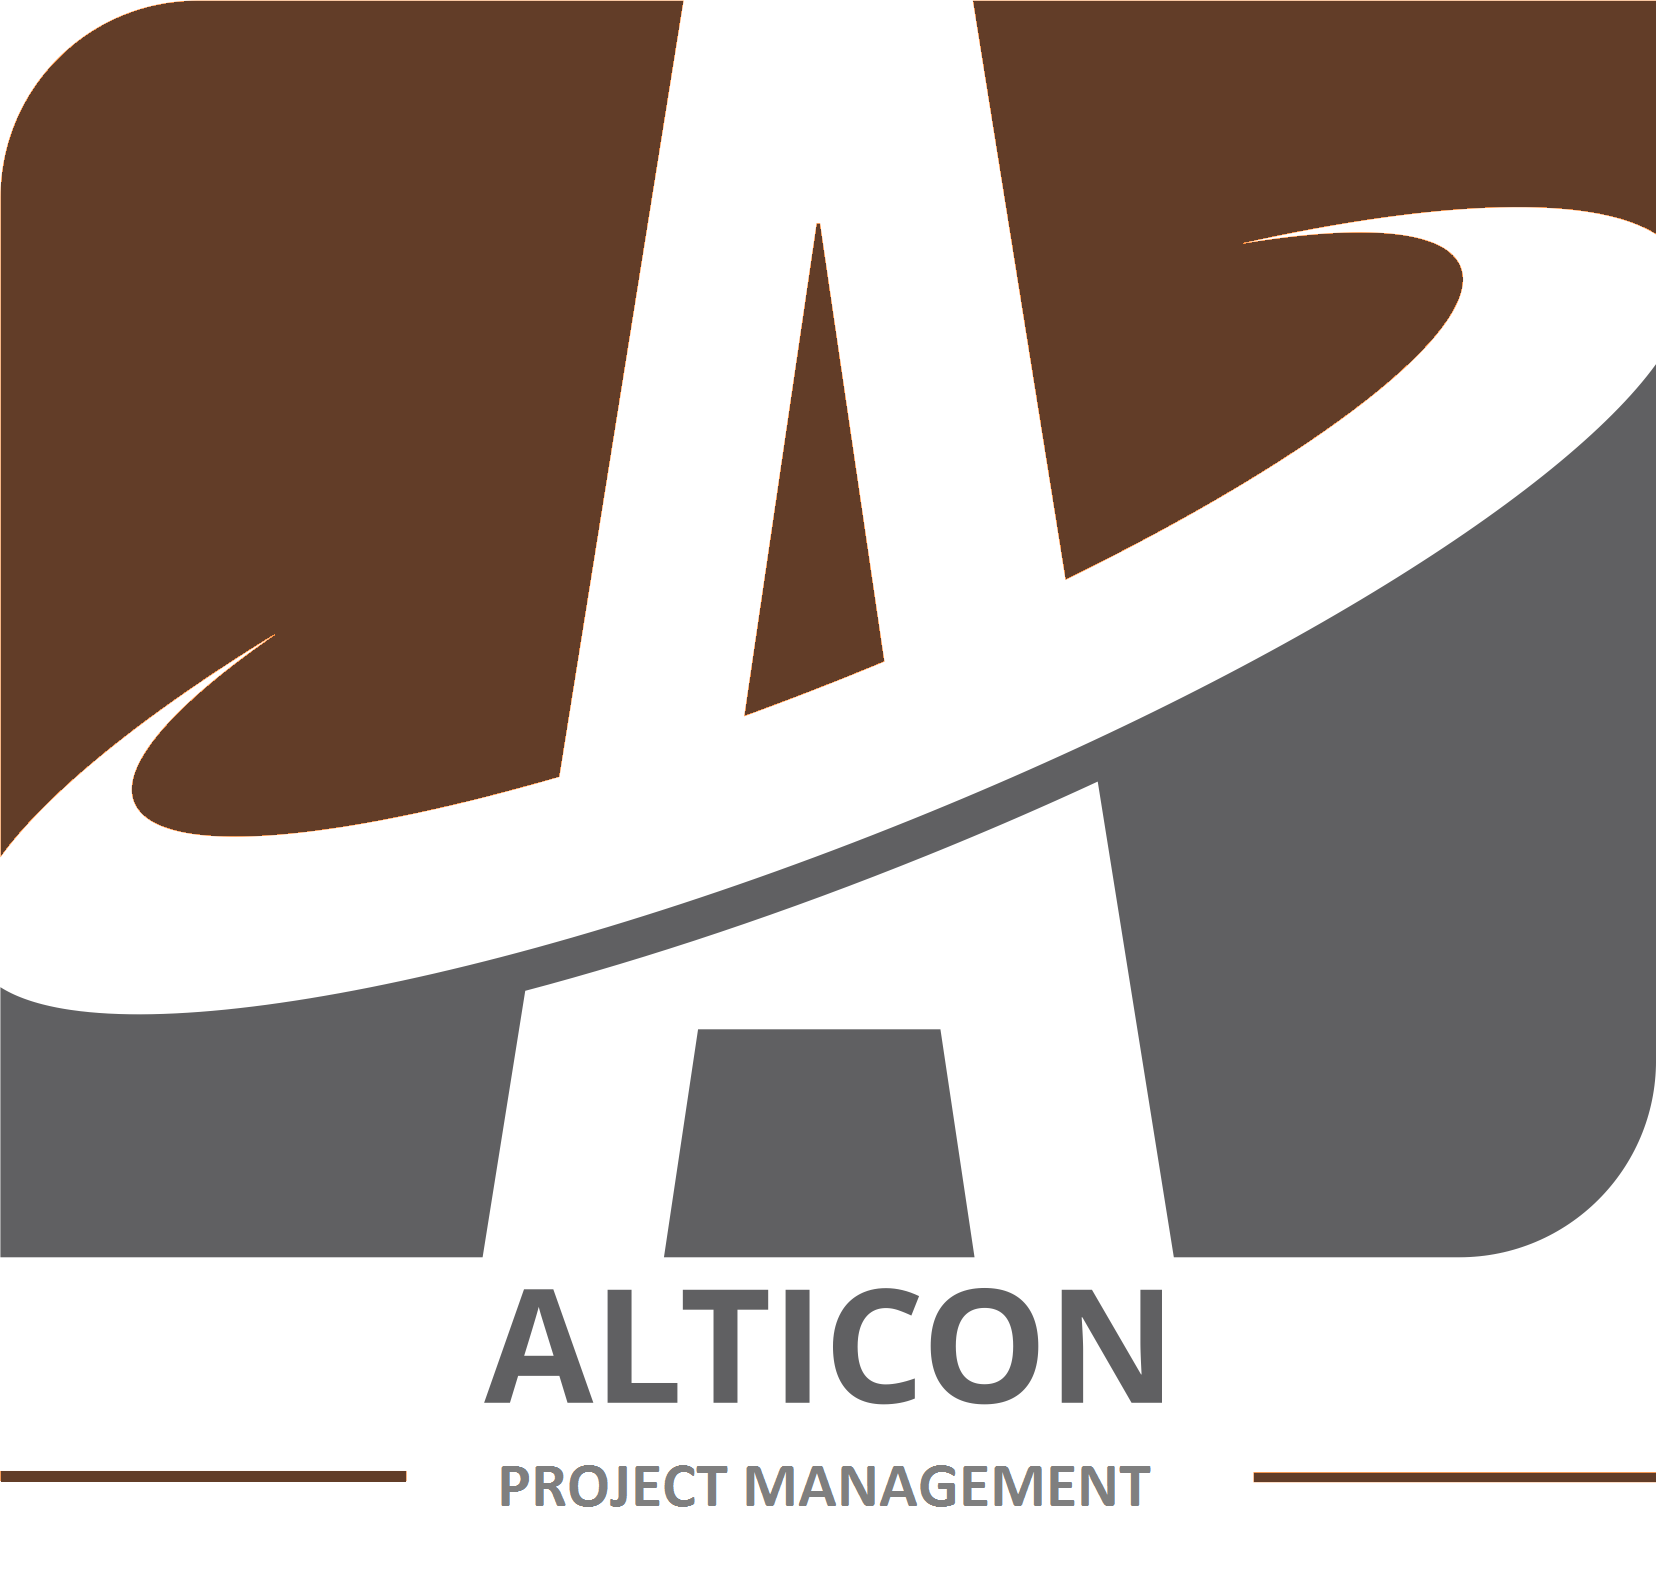 Alticon Project Management (APM) is a leader division in providing End to End Project Management services.